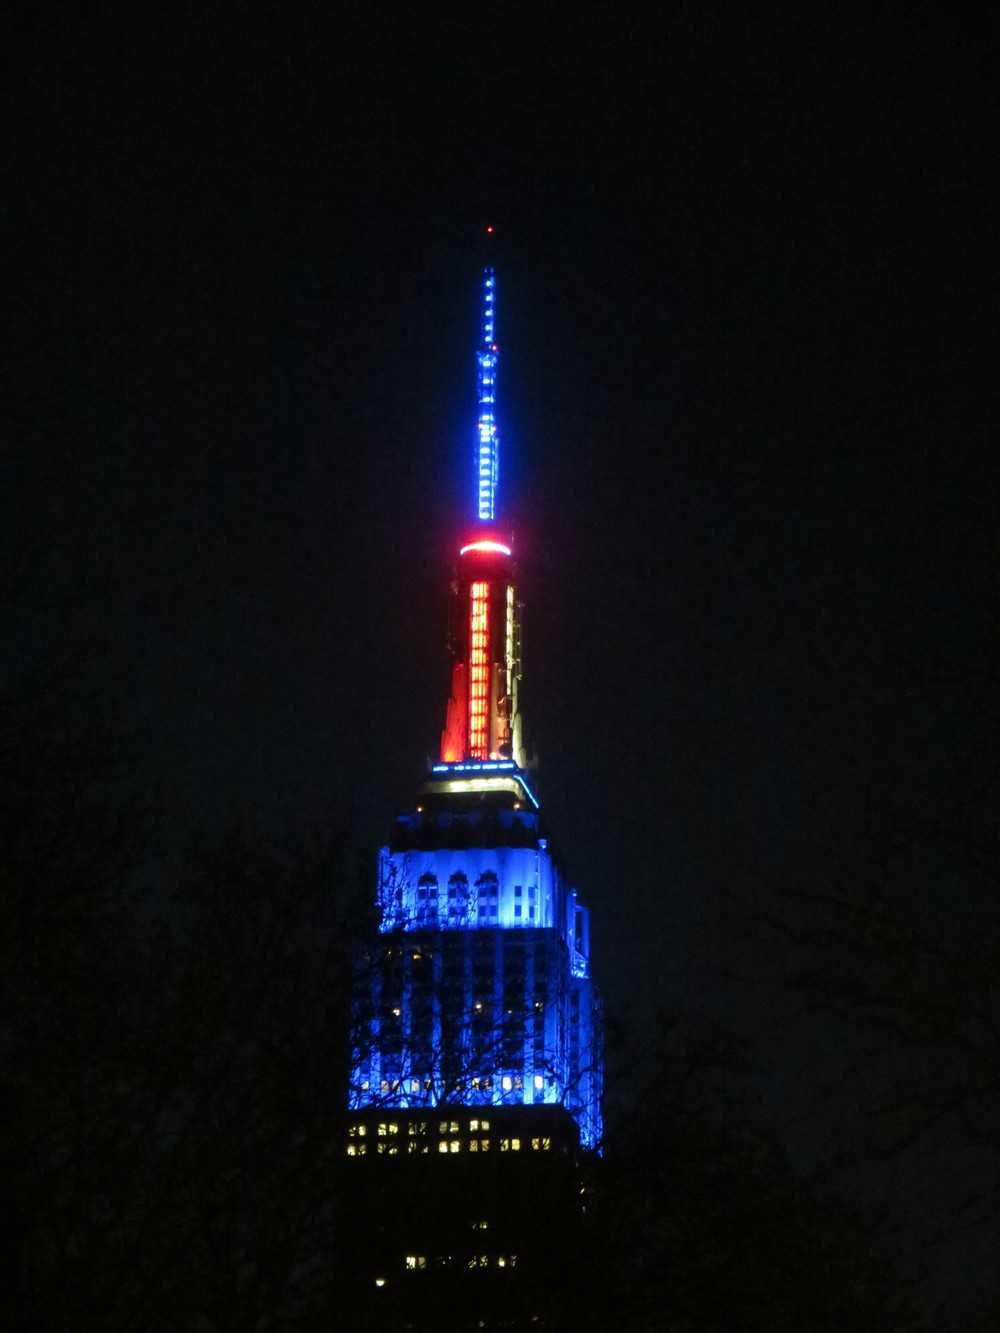 Empire State Building illuminated